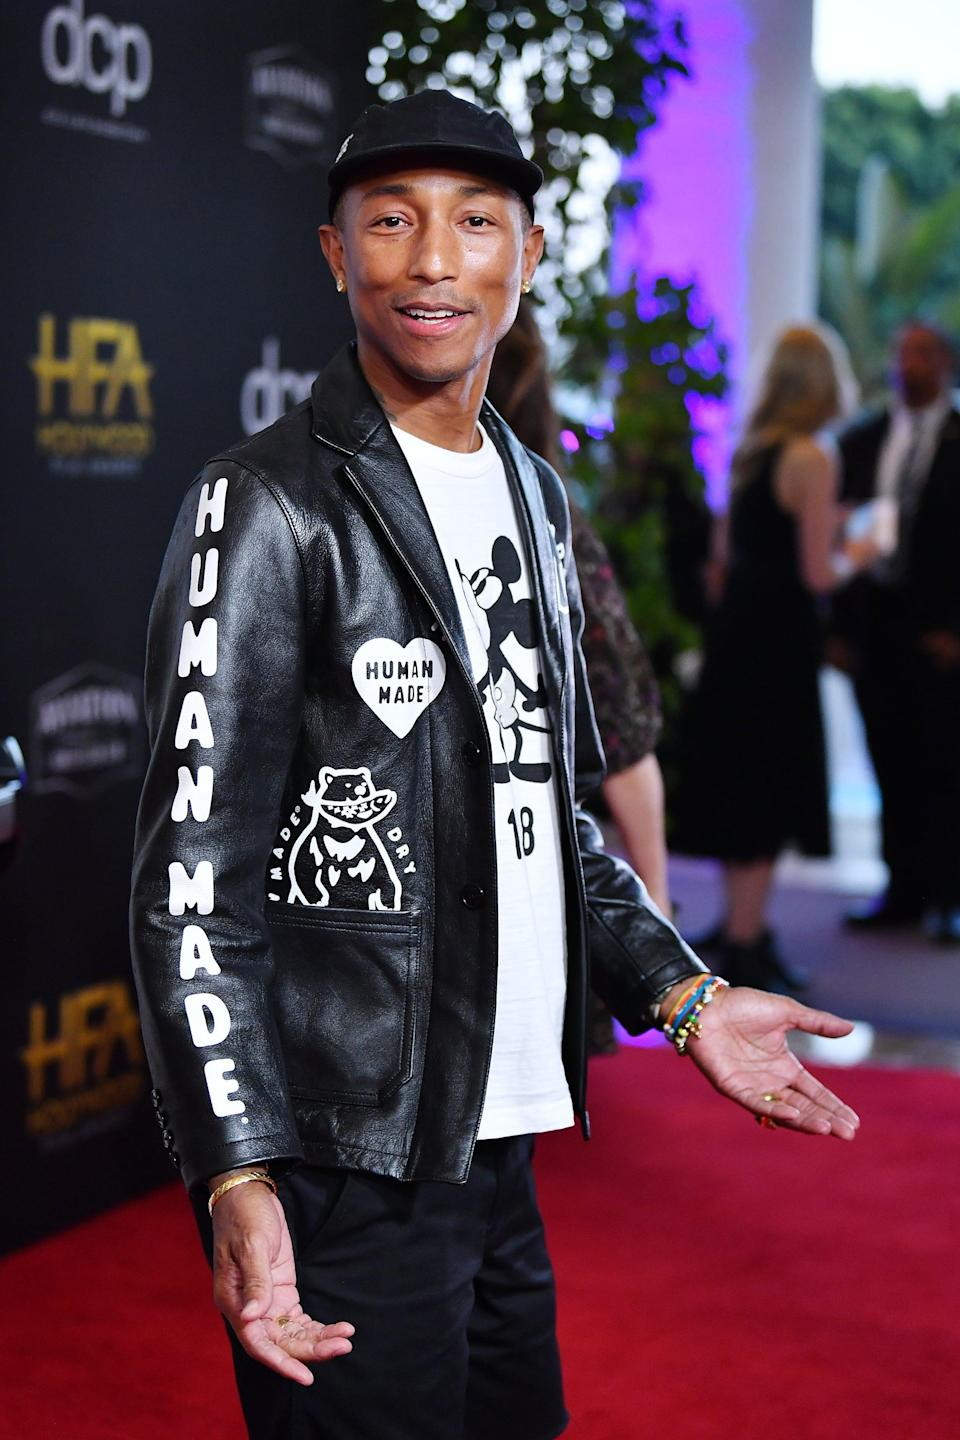 <p>The rapper and producer took extraordinary measures to remove a few of his tattoos. In 2008, Williams had a skin graft - a surgical procedure that involves transplanting healthy skin from one part of the body to another - in addition to getting laser treatment for his arm tattoos. </p>